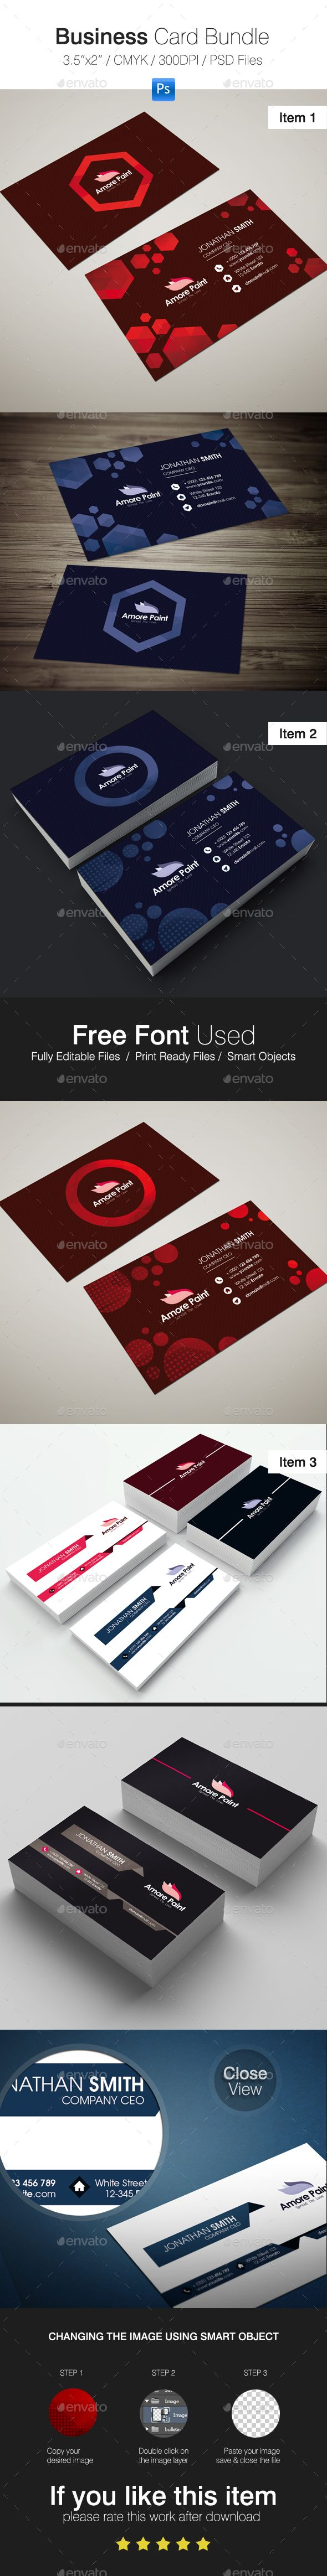 Business Card Bundle | Business cards, Print templates and Business